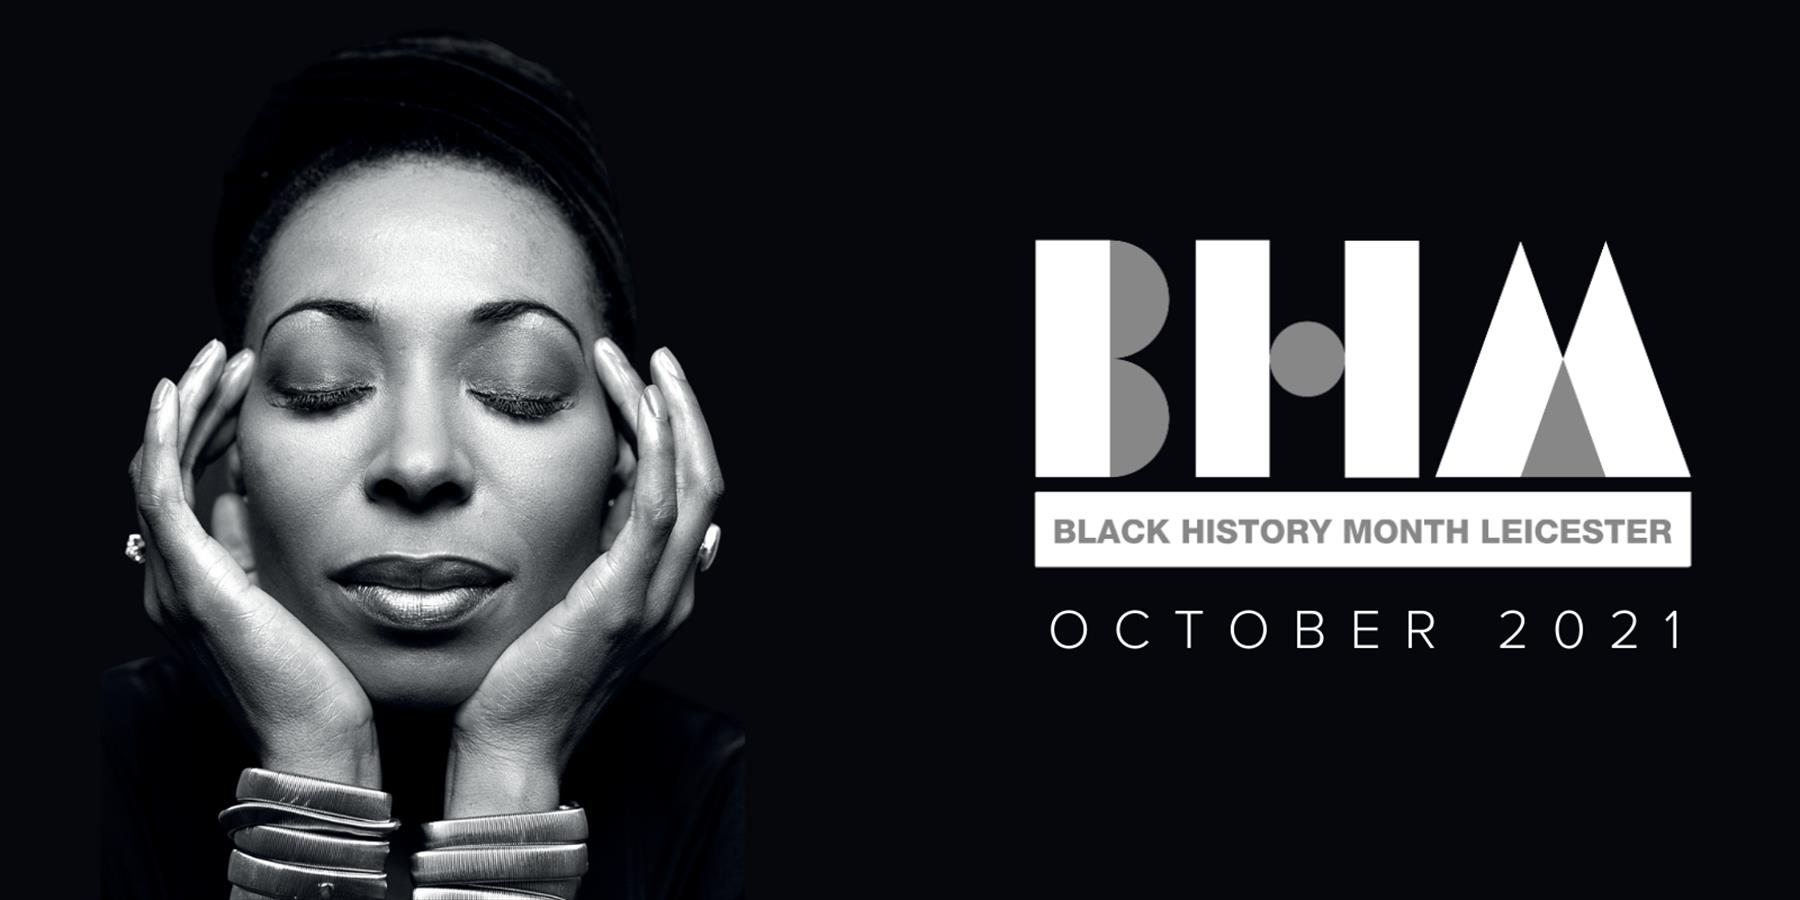 Black History Month Leicester